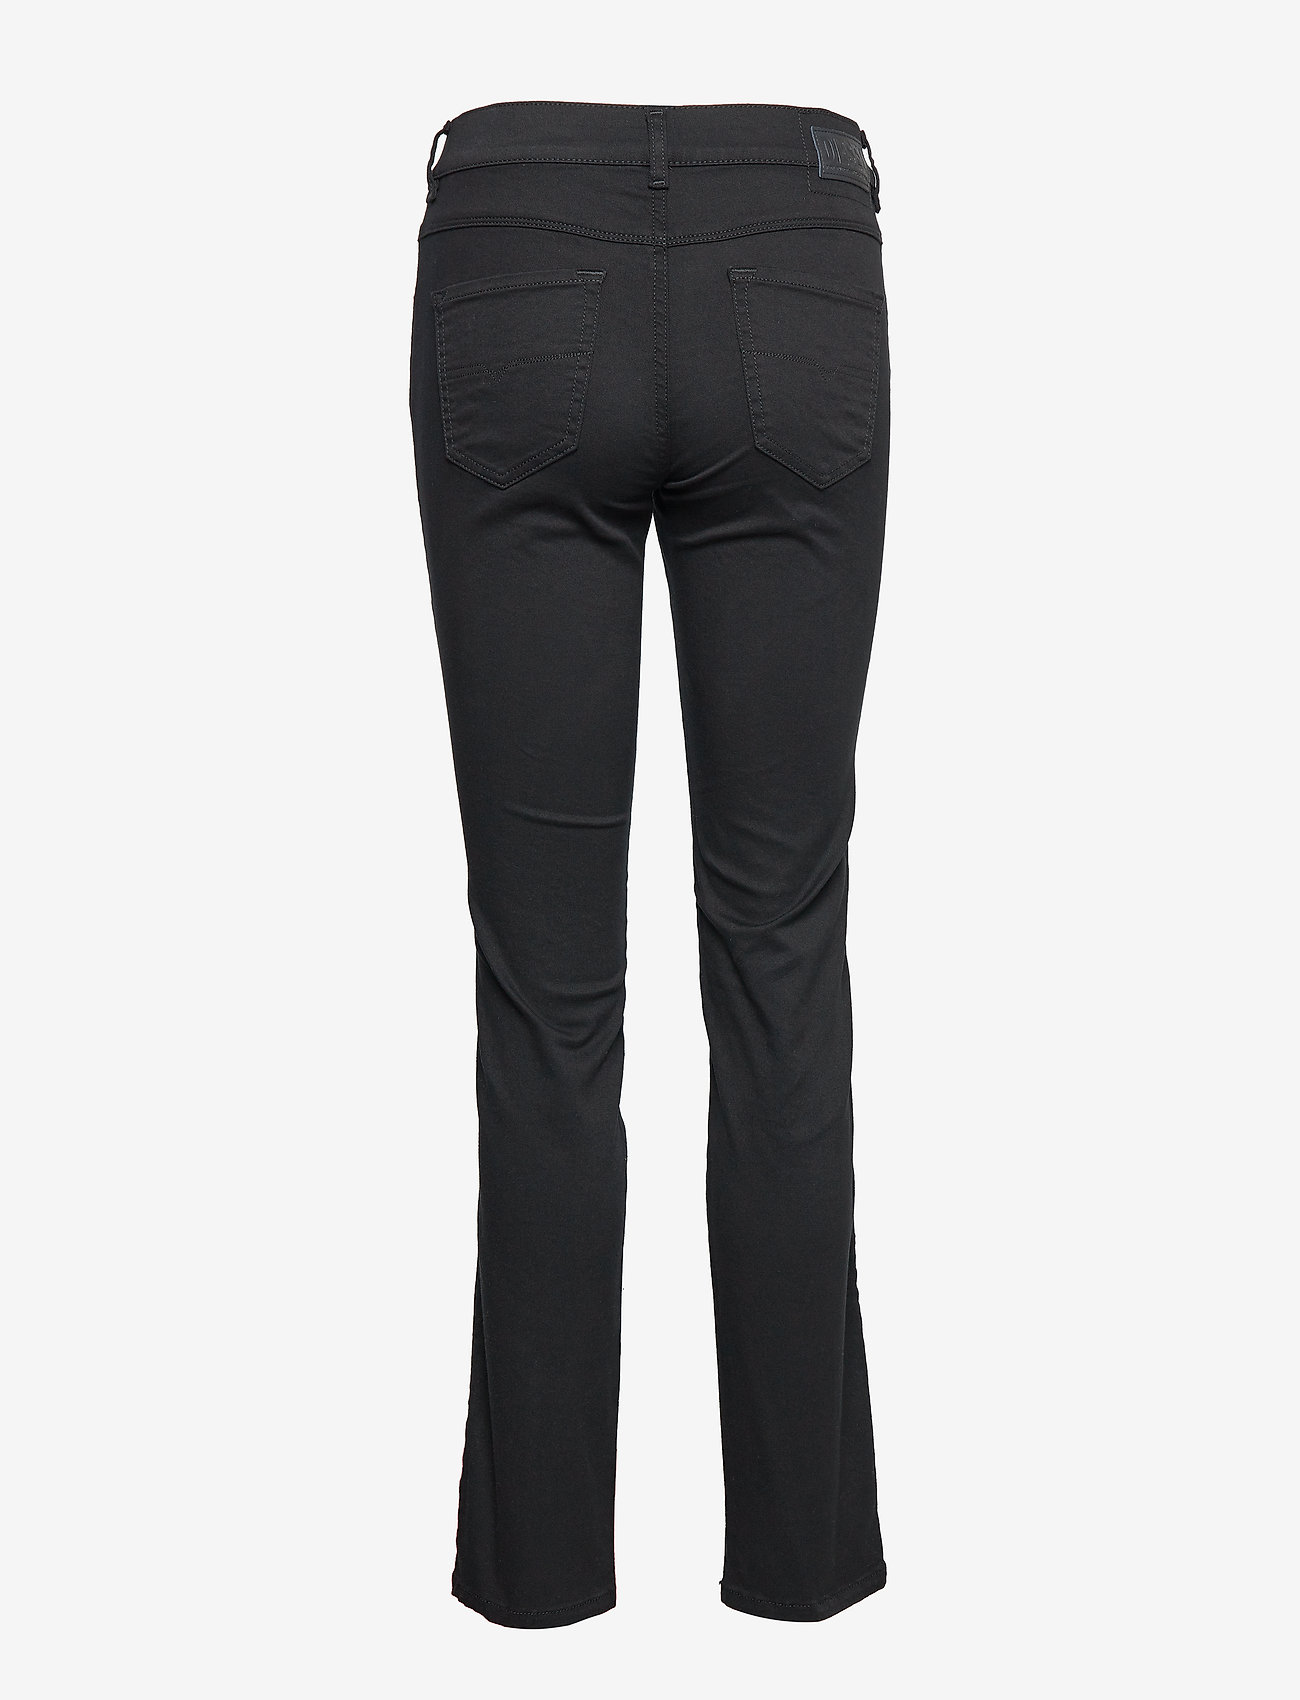 Diesel Women - SANDY 0665W - boot cut jeans - black/denim - 1